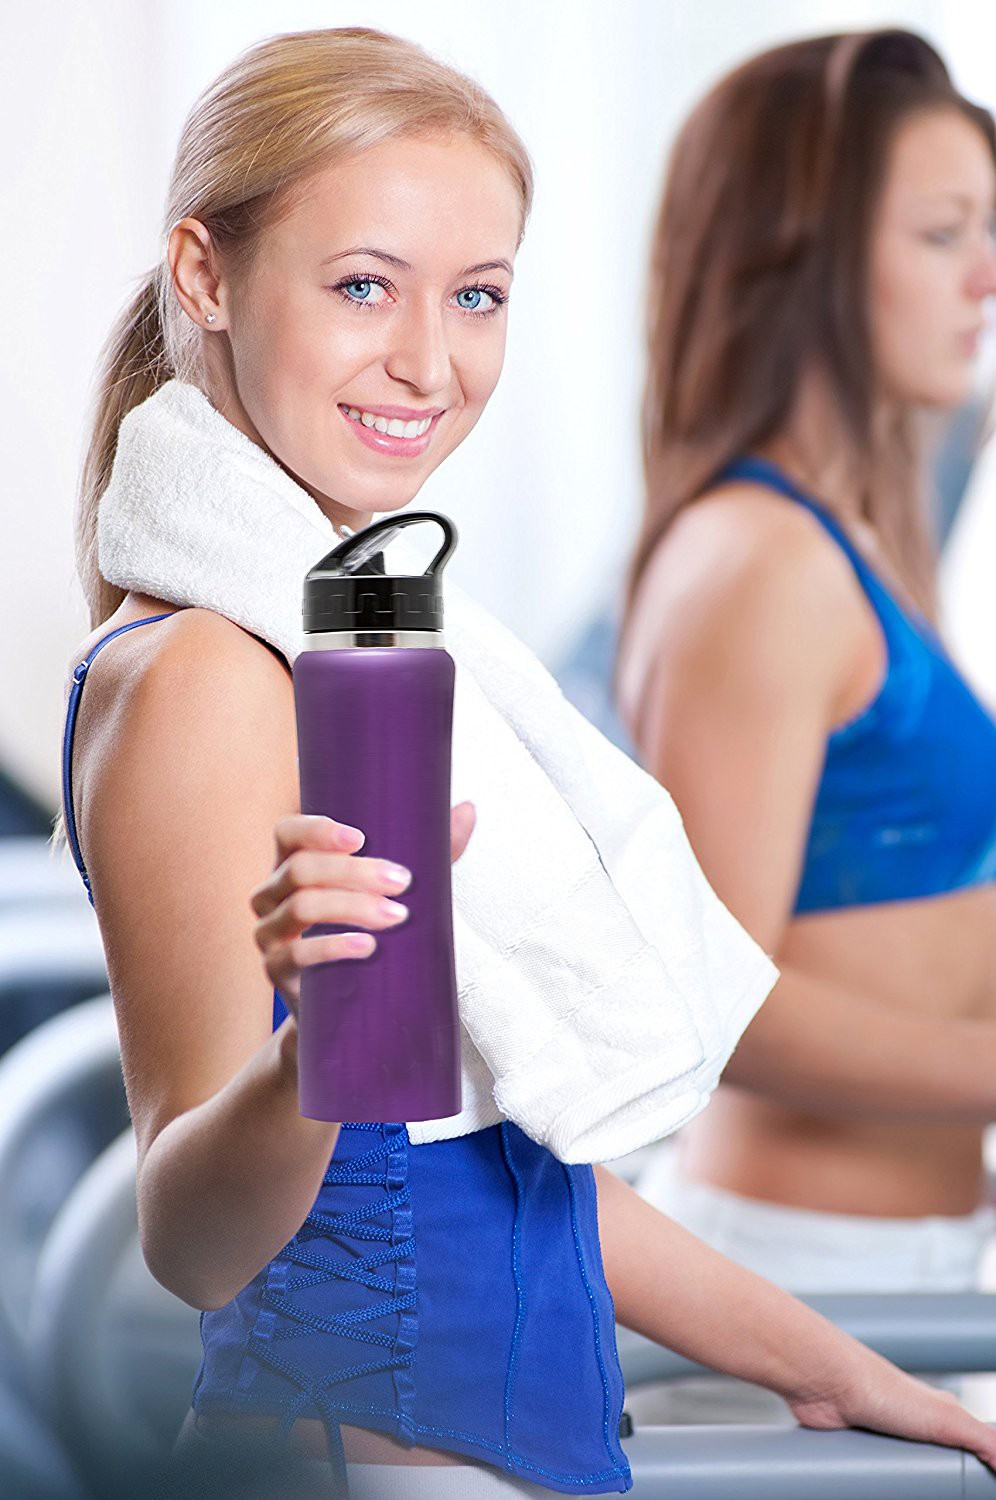 DS10 Stainless Steel Insulated Water Bottle with flip straw and sweat-proof rubber grip. 24oz H2O Sports drinking bottle